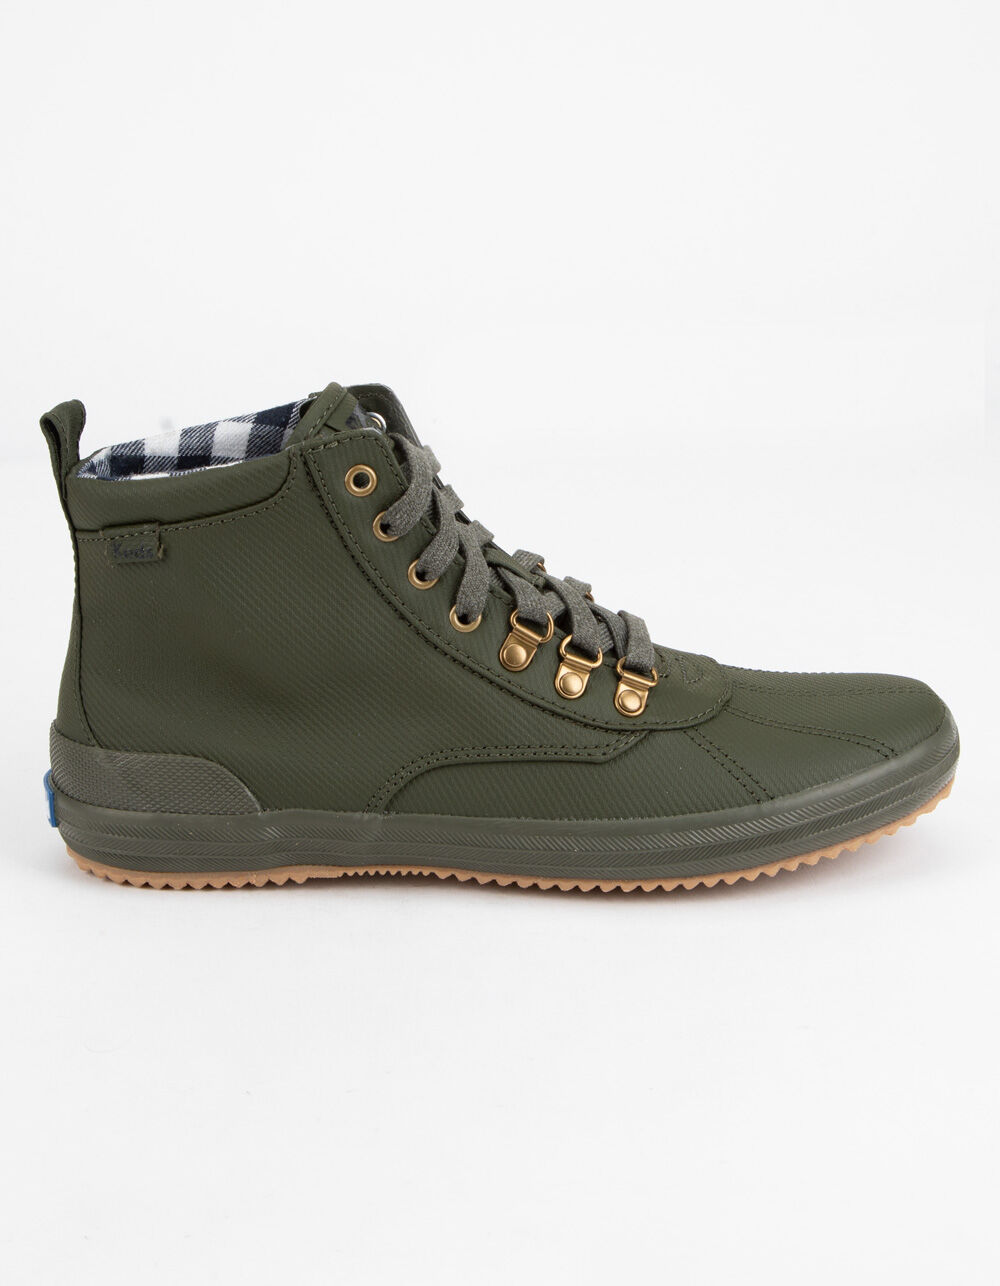 KEDS Scout Water-Resistant Olive Boots